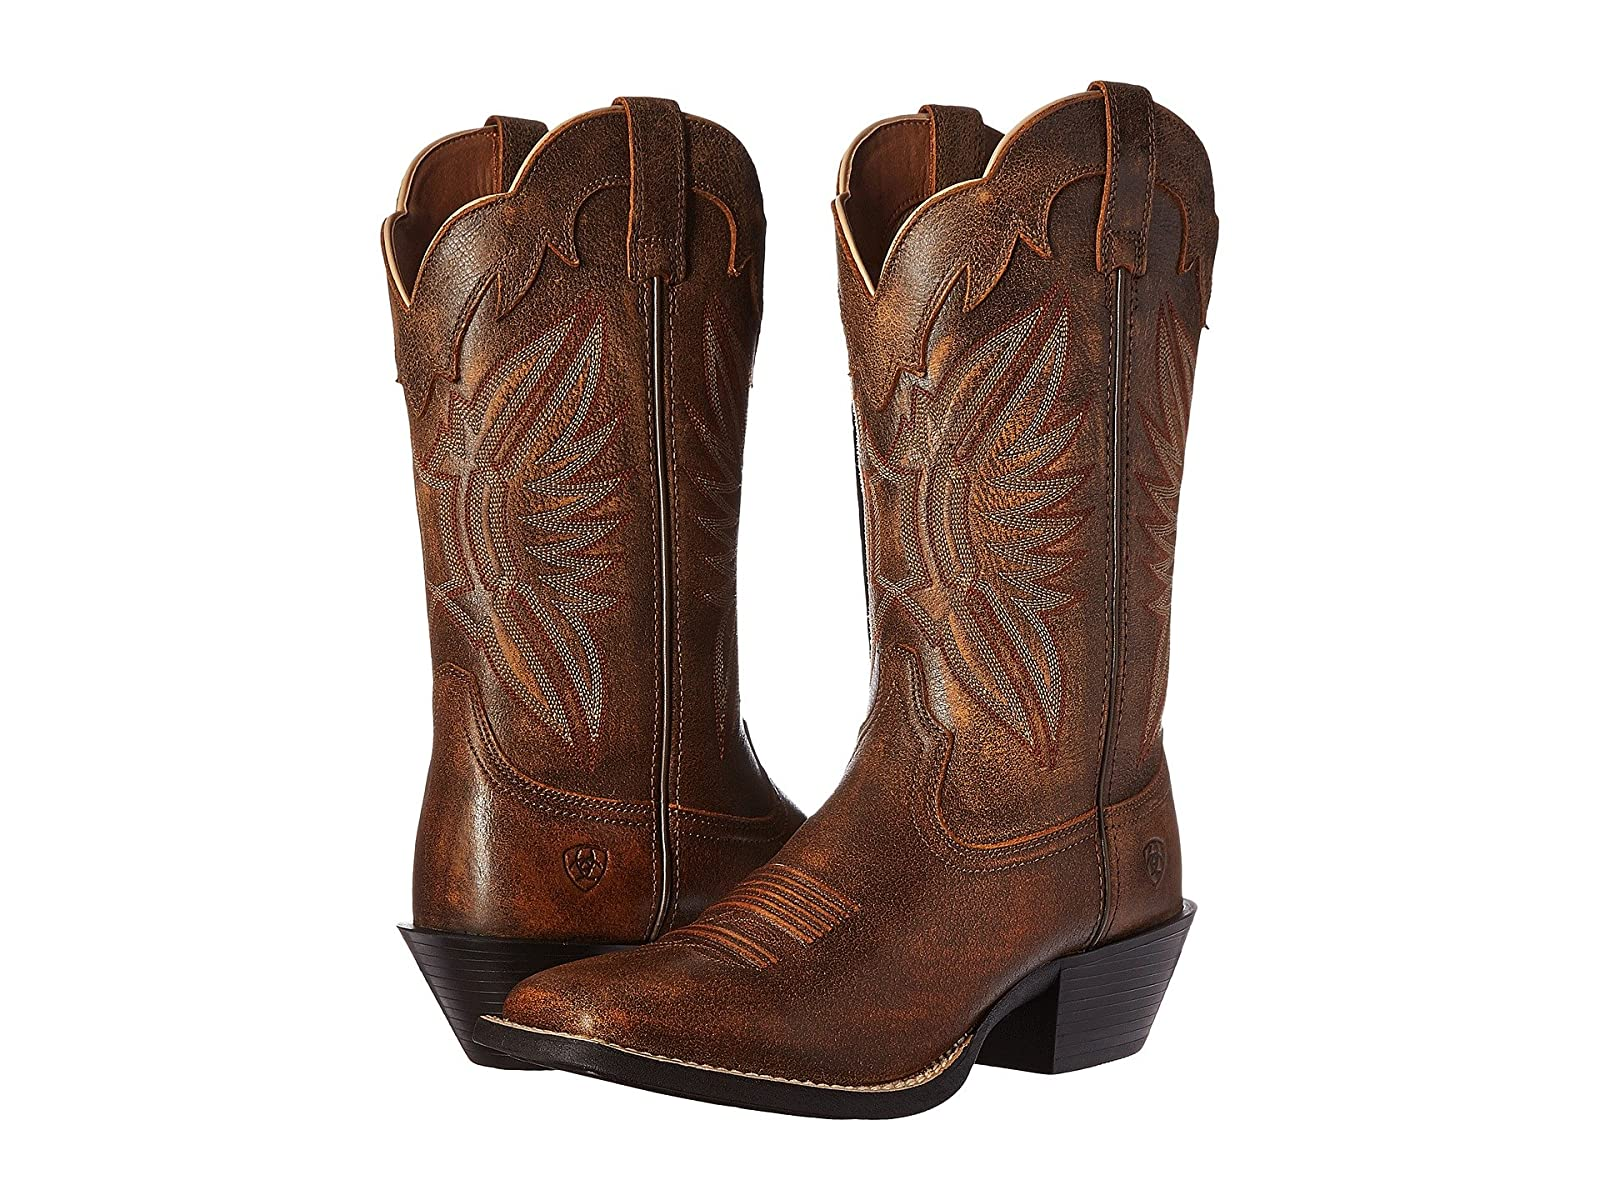 Ariat Round Up OutfitterSelling fashionable and eye-catching shoes